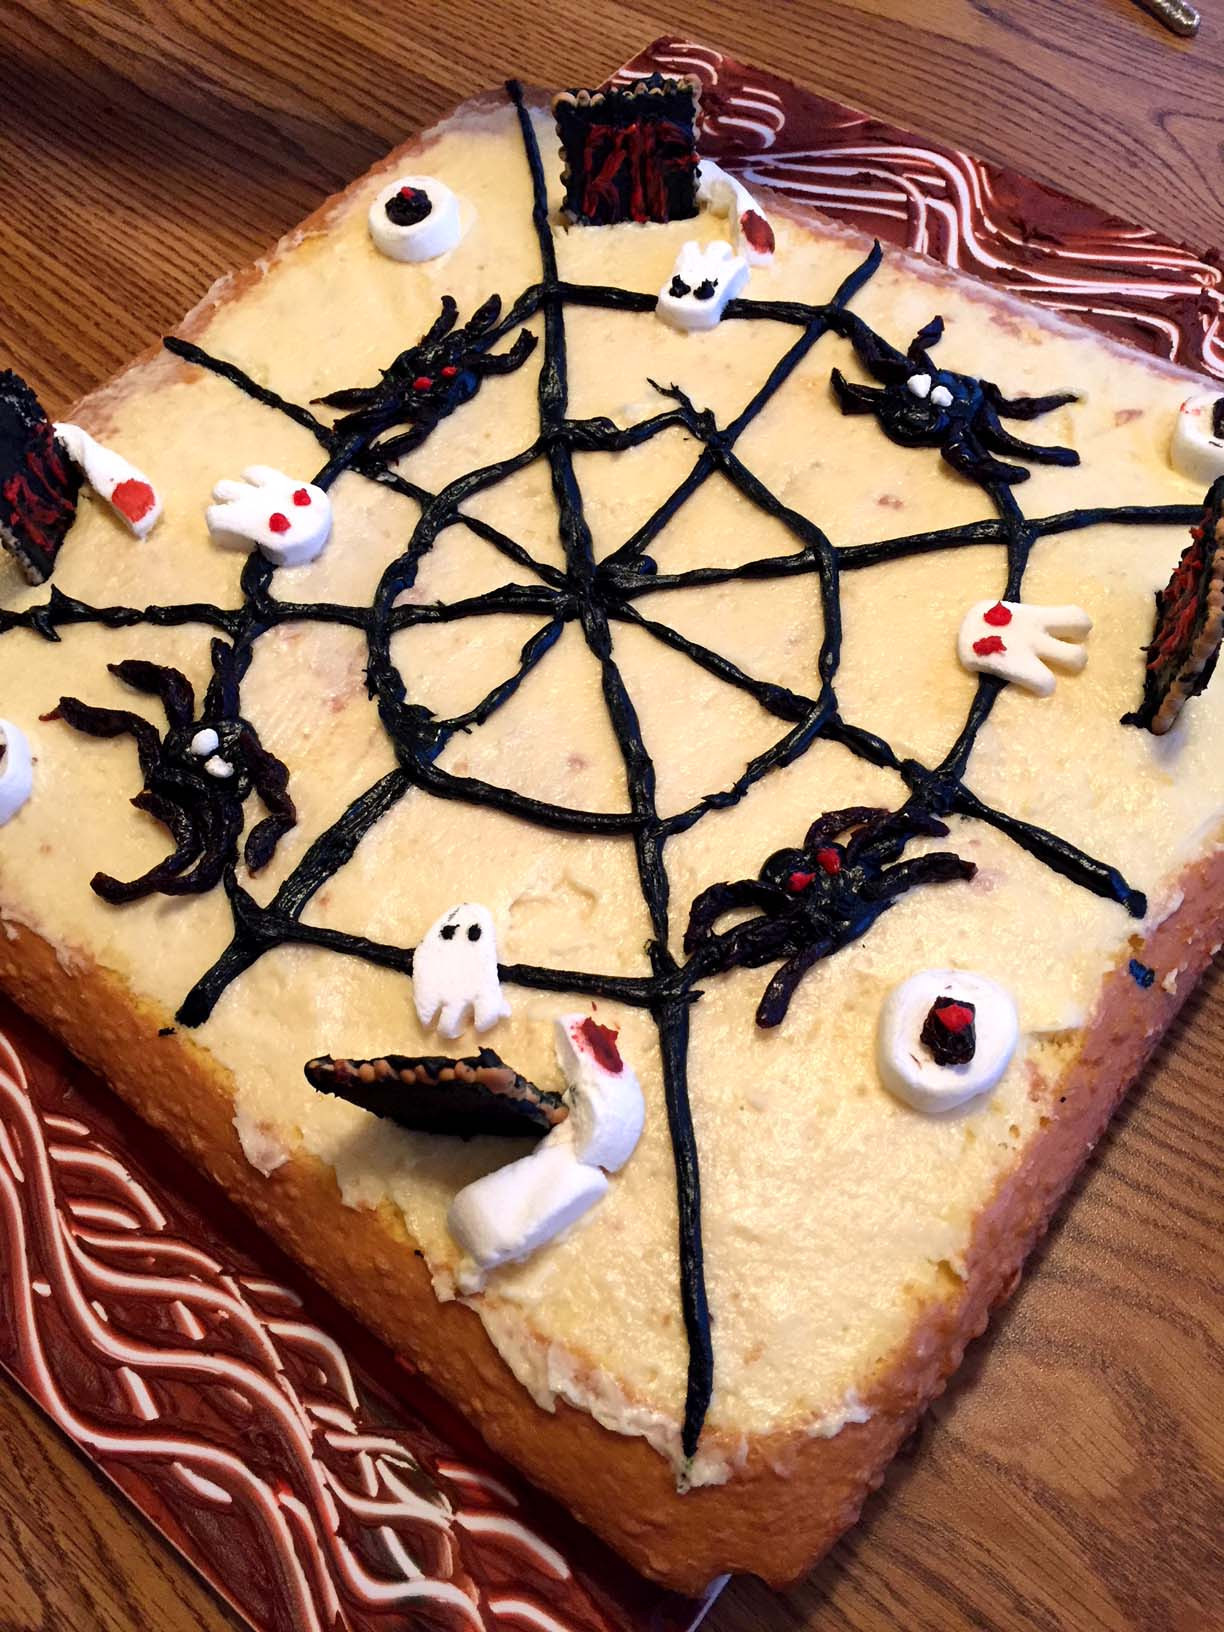 Simple Halloween Cakes  Easy Halloween Cake Decorating Ideas For Spooky Cake